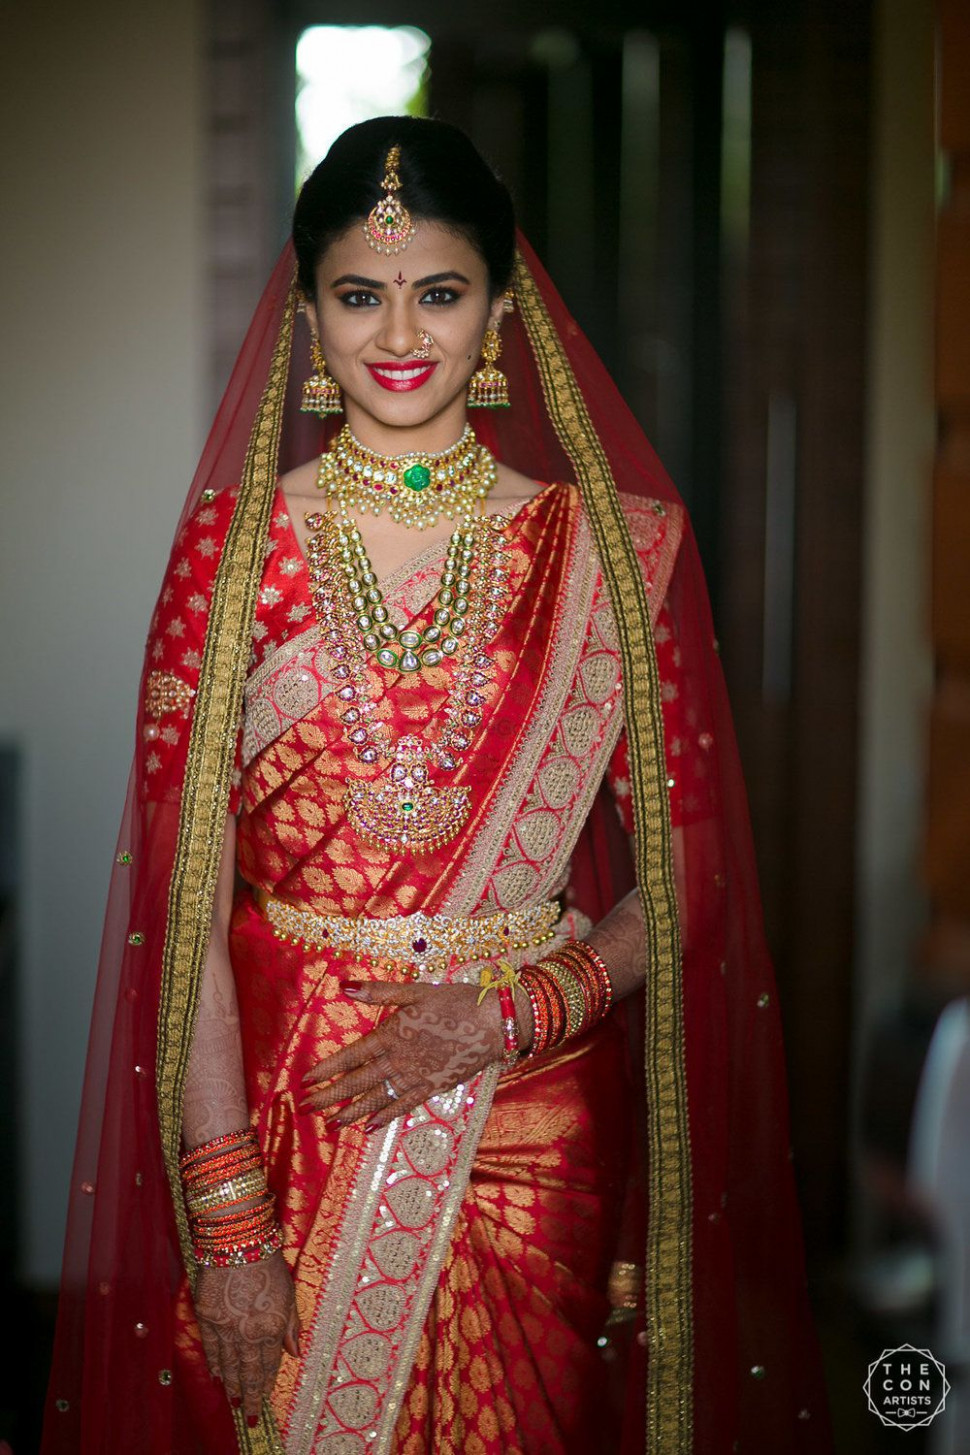 Photo of South Indian bridal look in red saree with dupatta